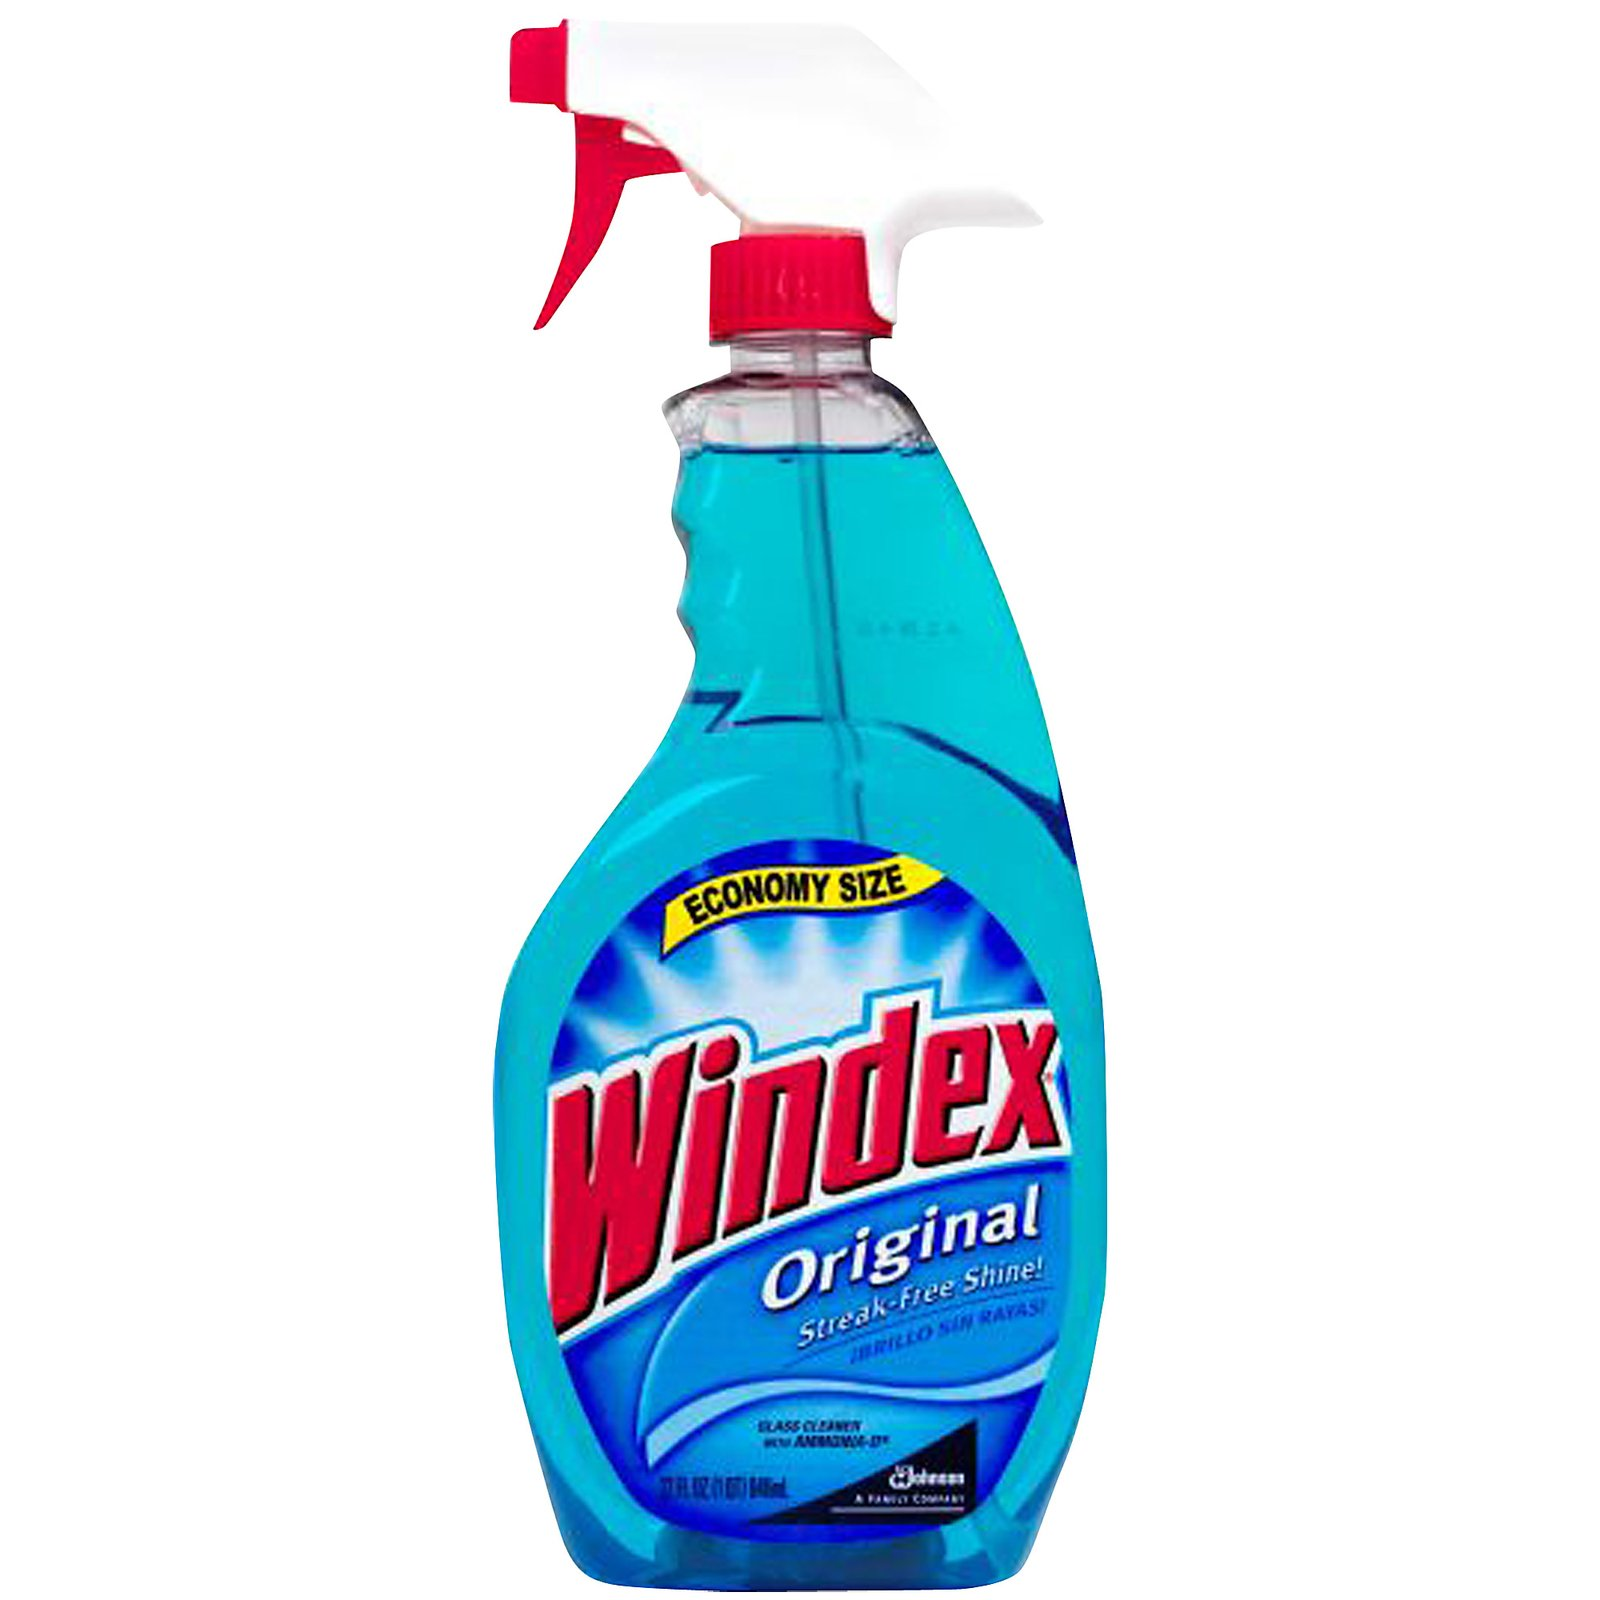 6 Really Cool Uses For Windex High Value Windex